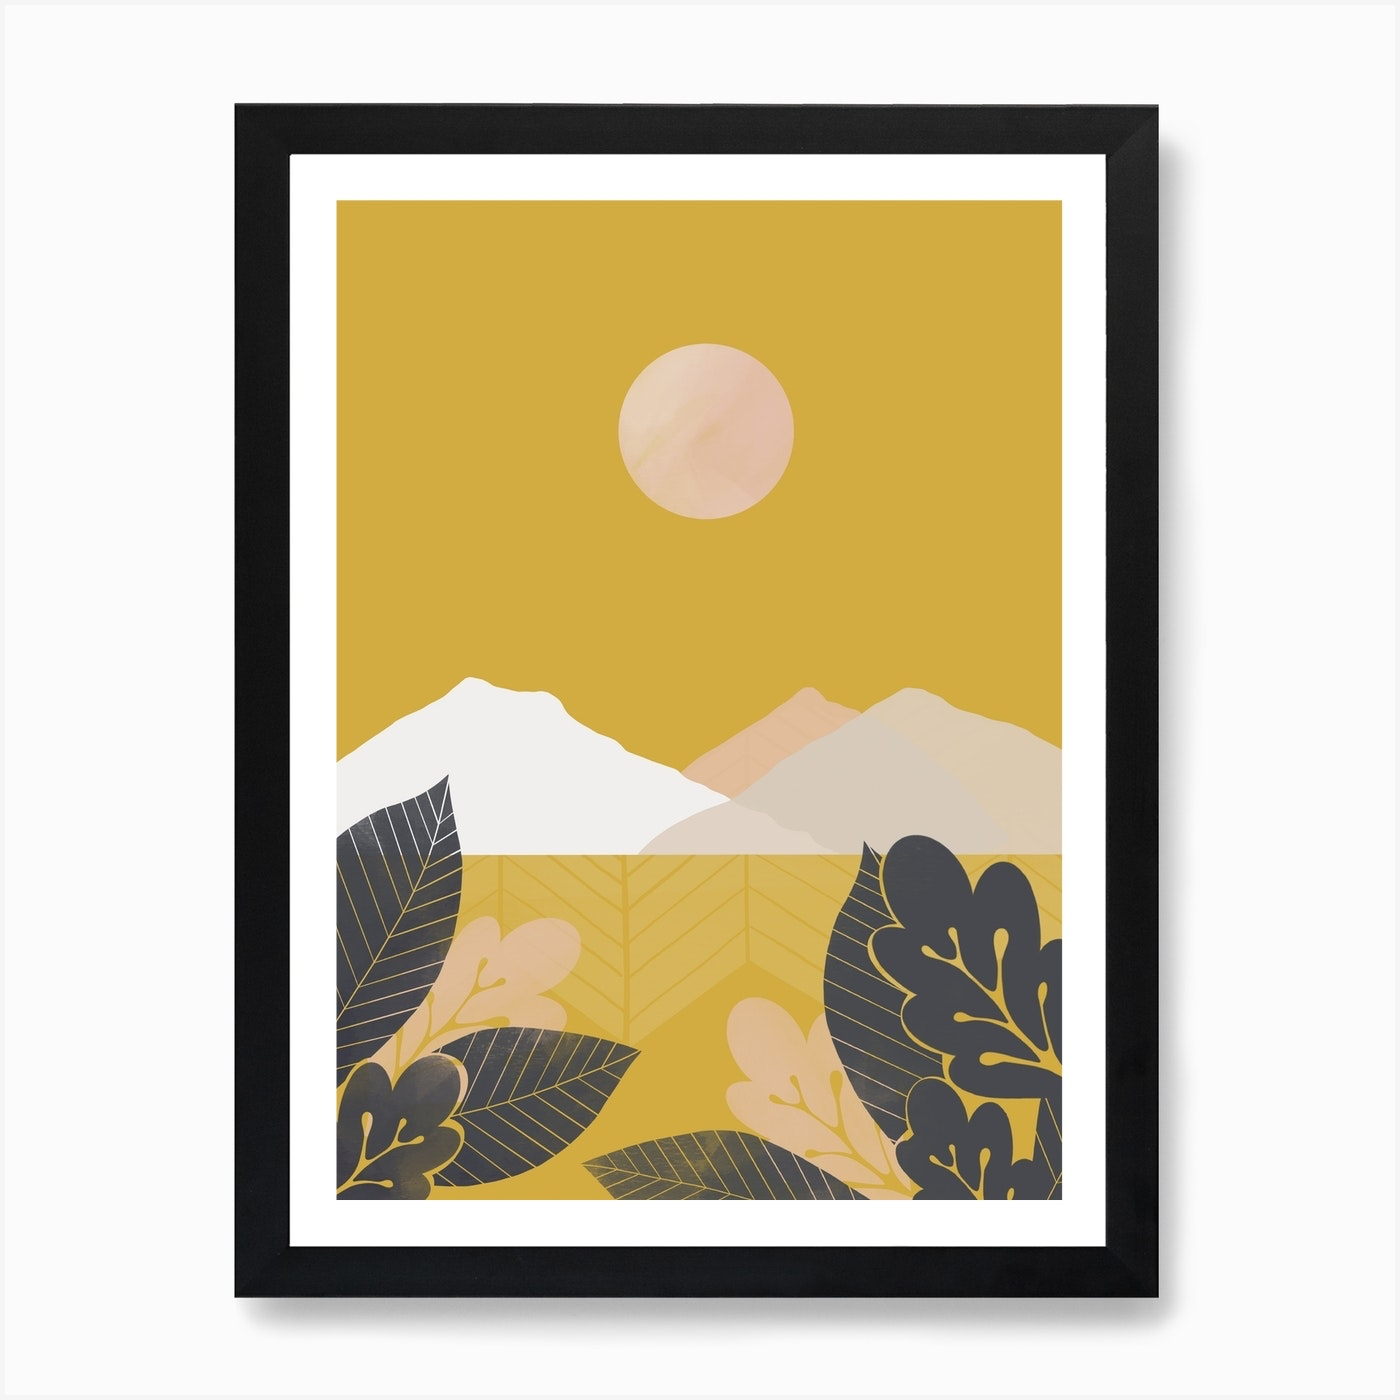 Mustard Mountains Through Leaves Abstract Landscape Art Print By Tulip House Studio Fy